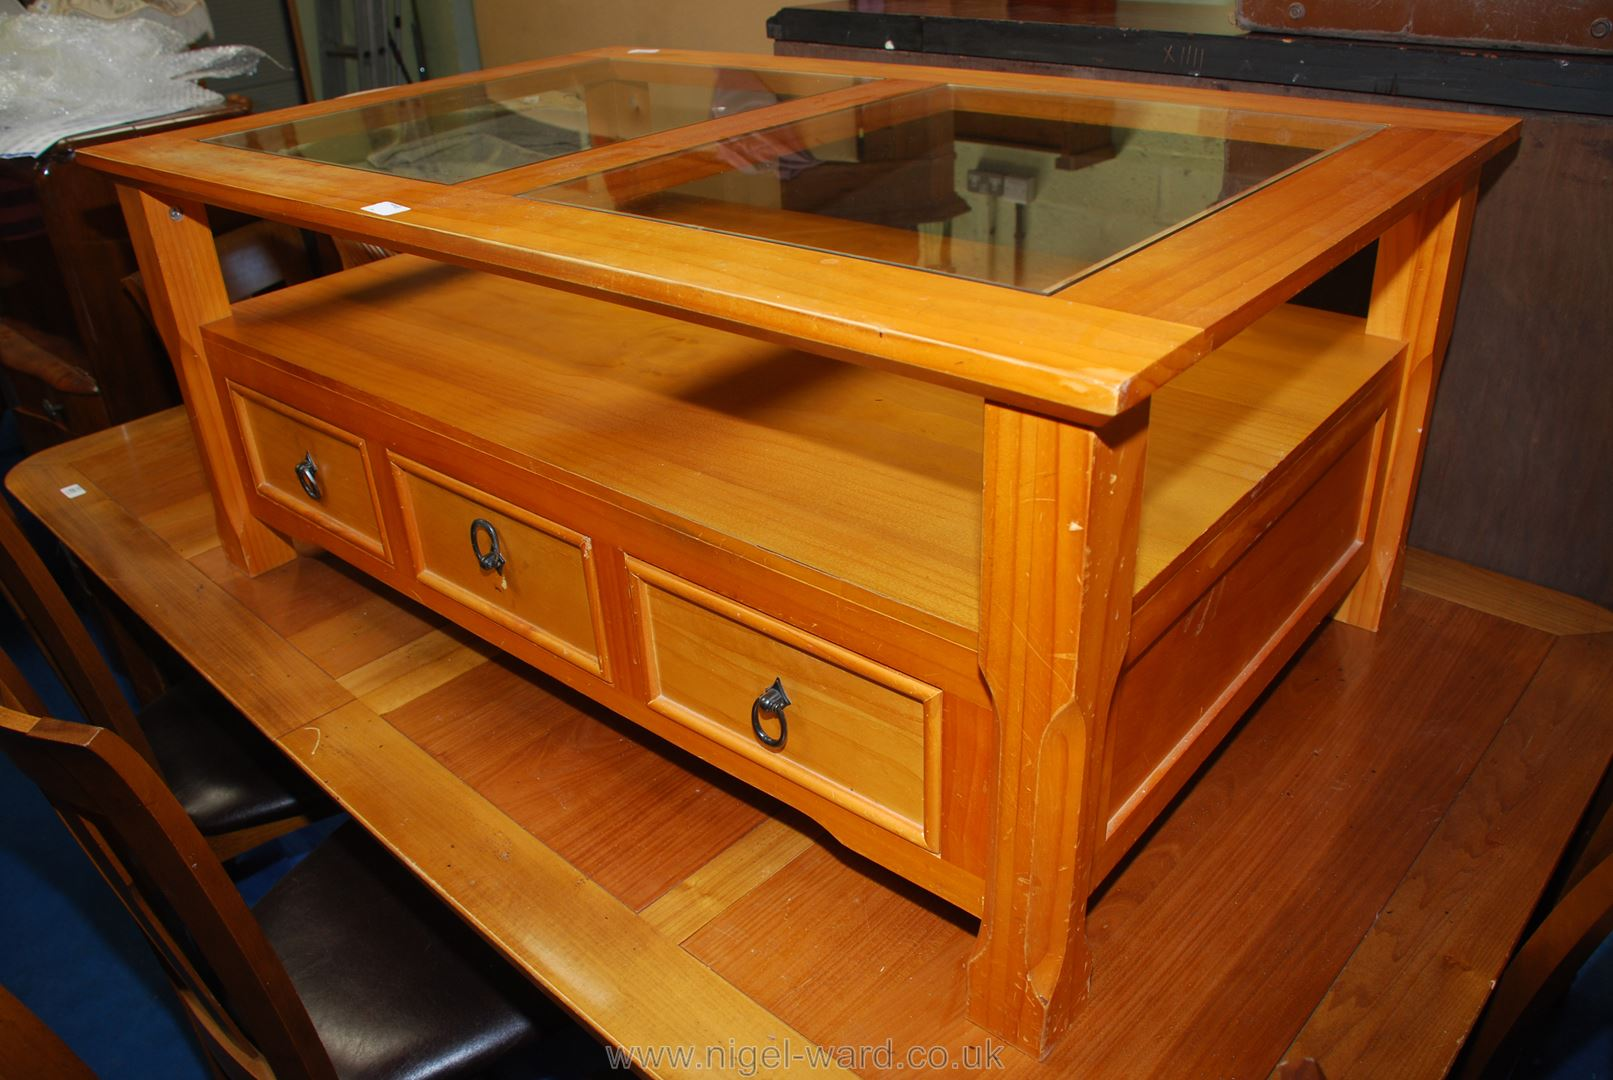 A glass topped coffee table with three drawers